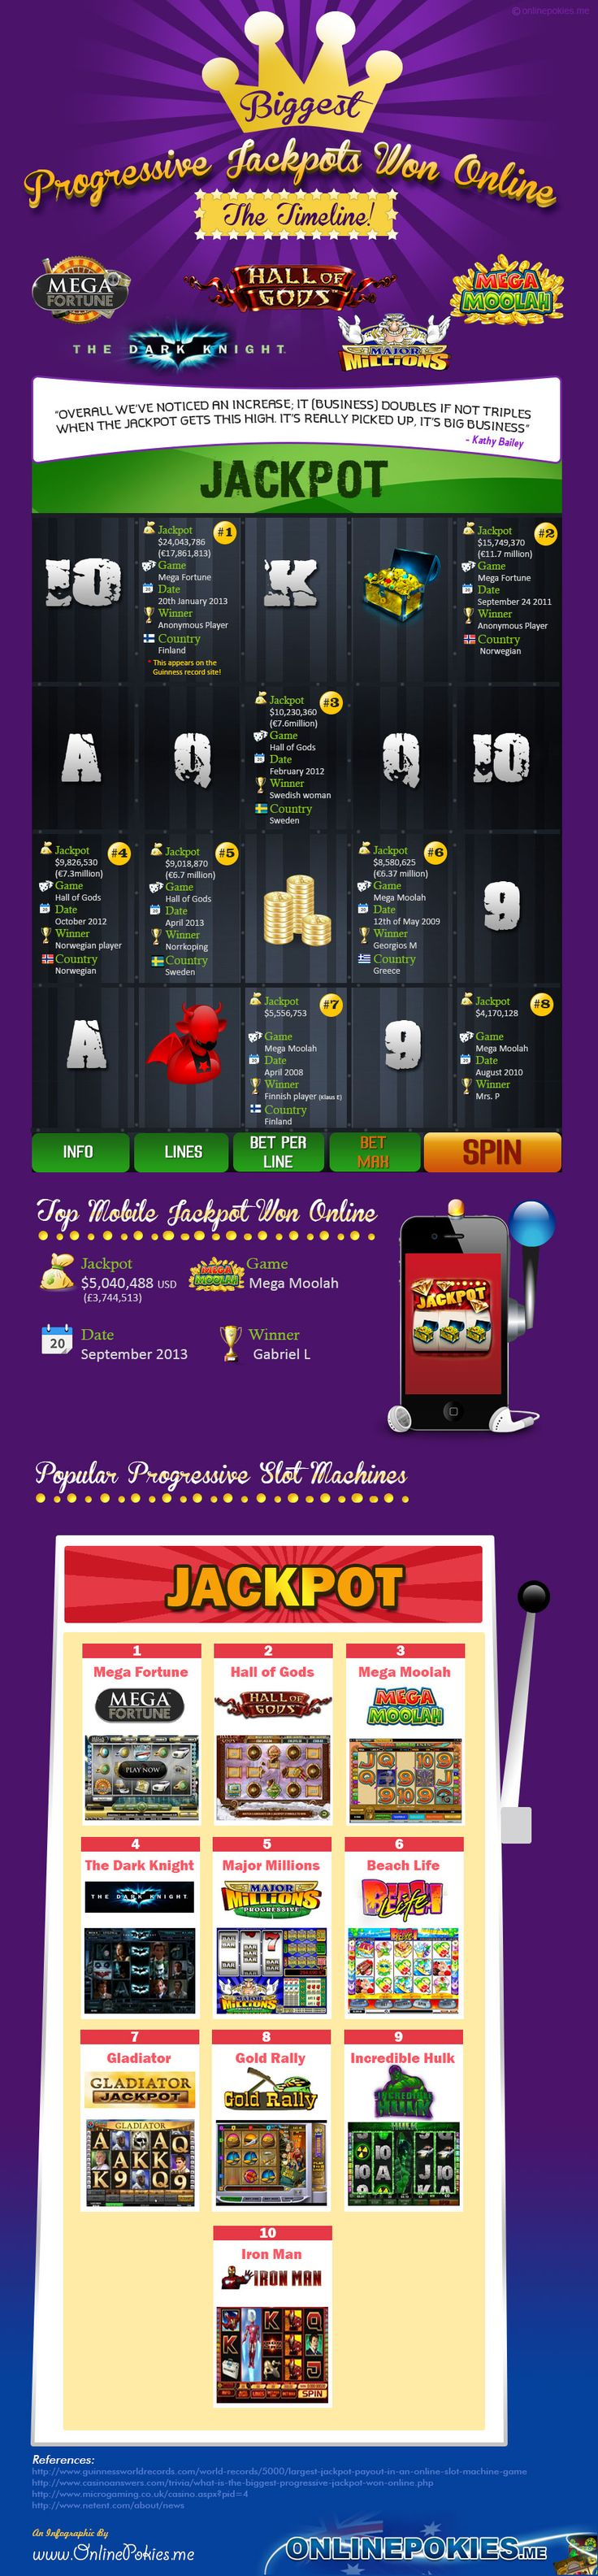 Mind Blowing Progressive Jackpots Won Online – An Infographic - You won't believe how many millions of dollars these people won by gambling online.  Don't look at this if you get jealous easily. Check Progressive Jackpots Won Online - http://www.onlinepokies.me: Gambling Online, Blowing Progressive, Check Progressive, Jealous Easily, Http Www Onlinepokies Me, Mind Blowing, Business Infographics